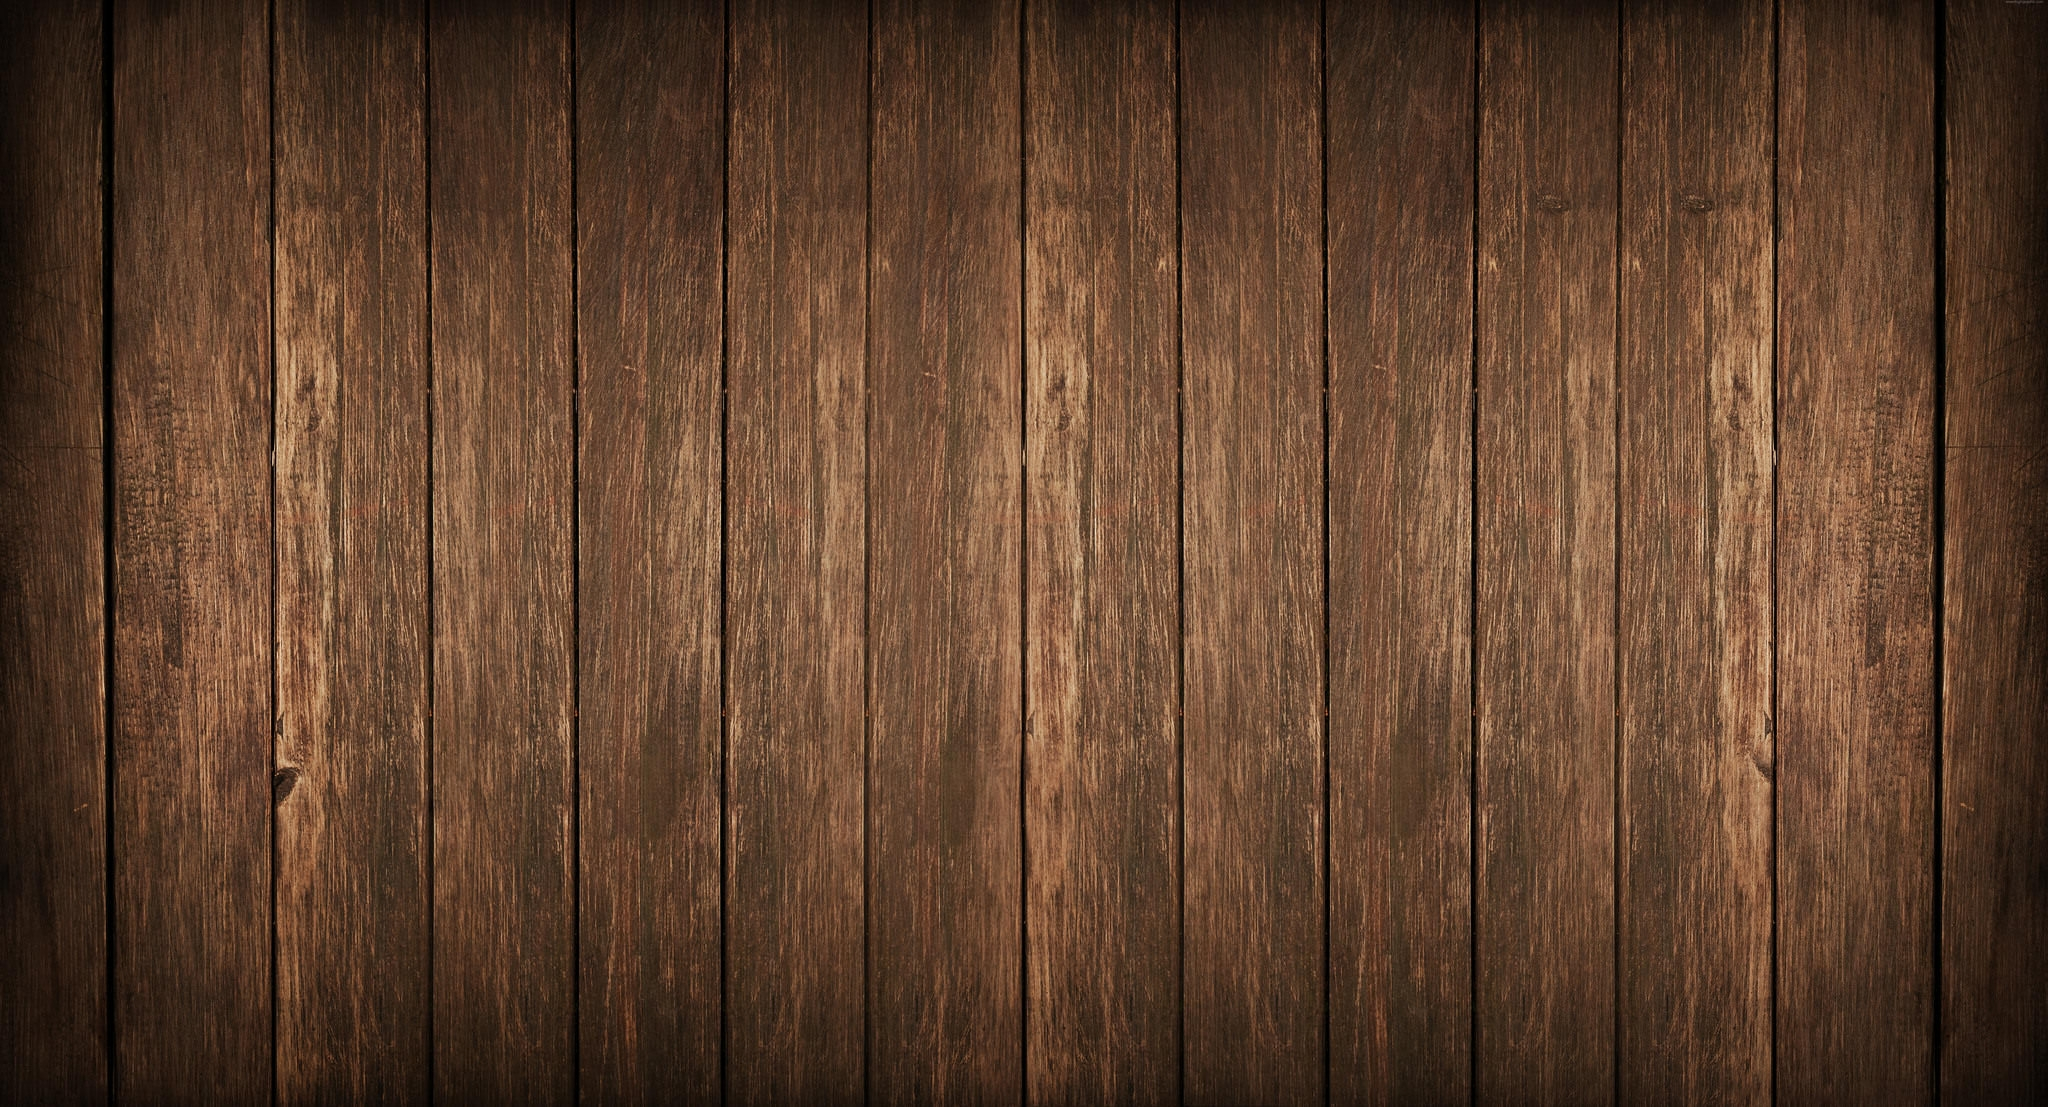 Wooden Panels Dark brown Background